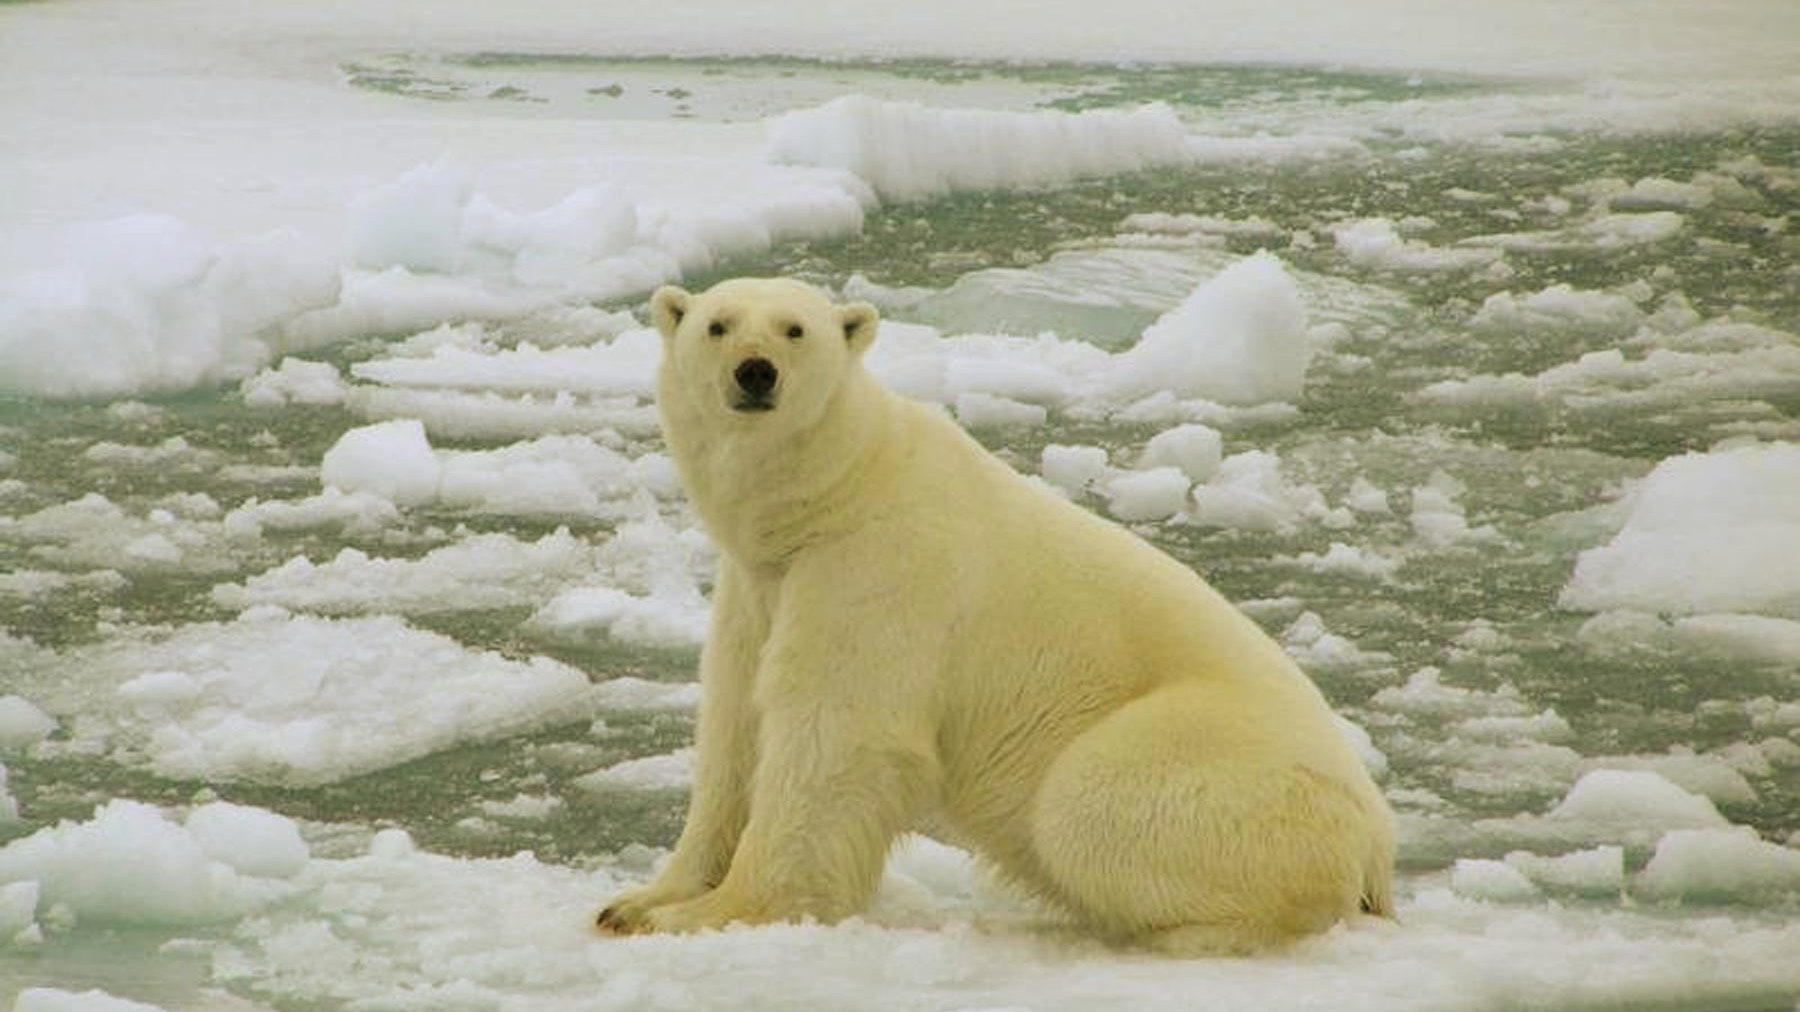 Global warming 'to wipe out' most of animals in protected areas